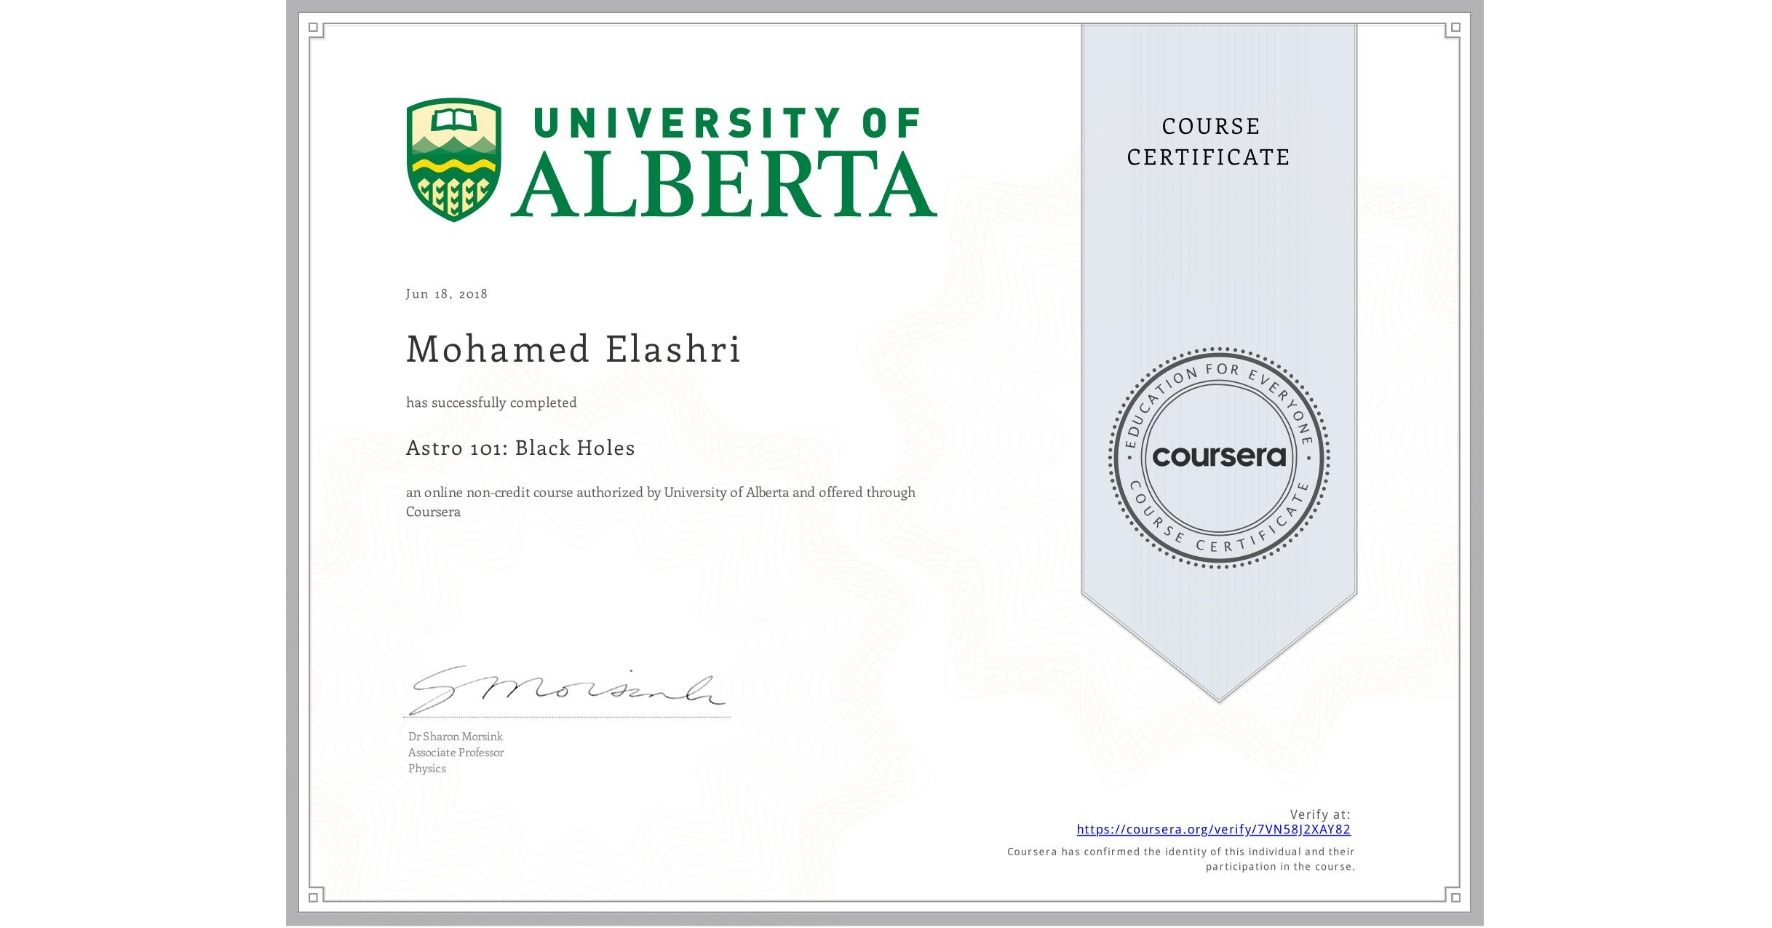 View certificate for Mohamed Elashri, Astro 101: Black Holes, an online non-credit course authorized by University of Alberta and offered through Coursera